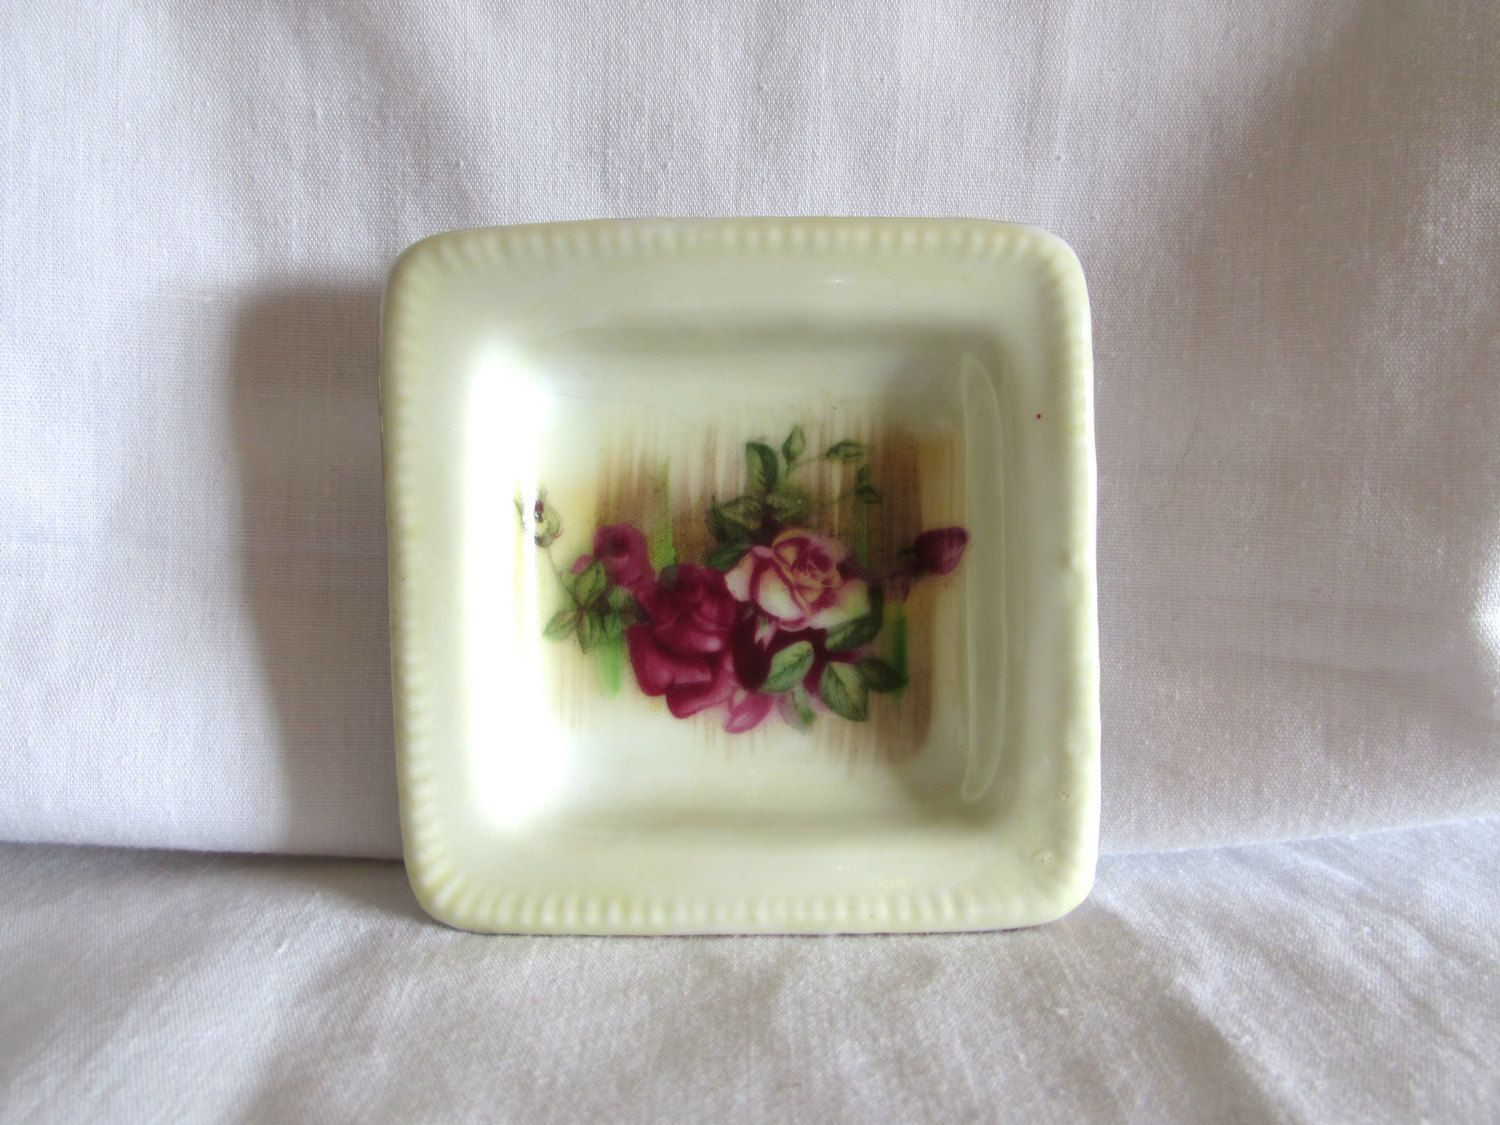 ucagco china vase of miniature square trinket dish rose floral design pin dish ucagco inside miniature square trinket dish rose floral design pin dish ucagco ring dish laslovelies